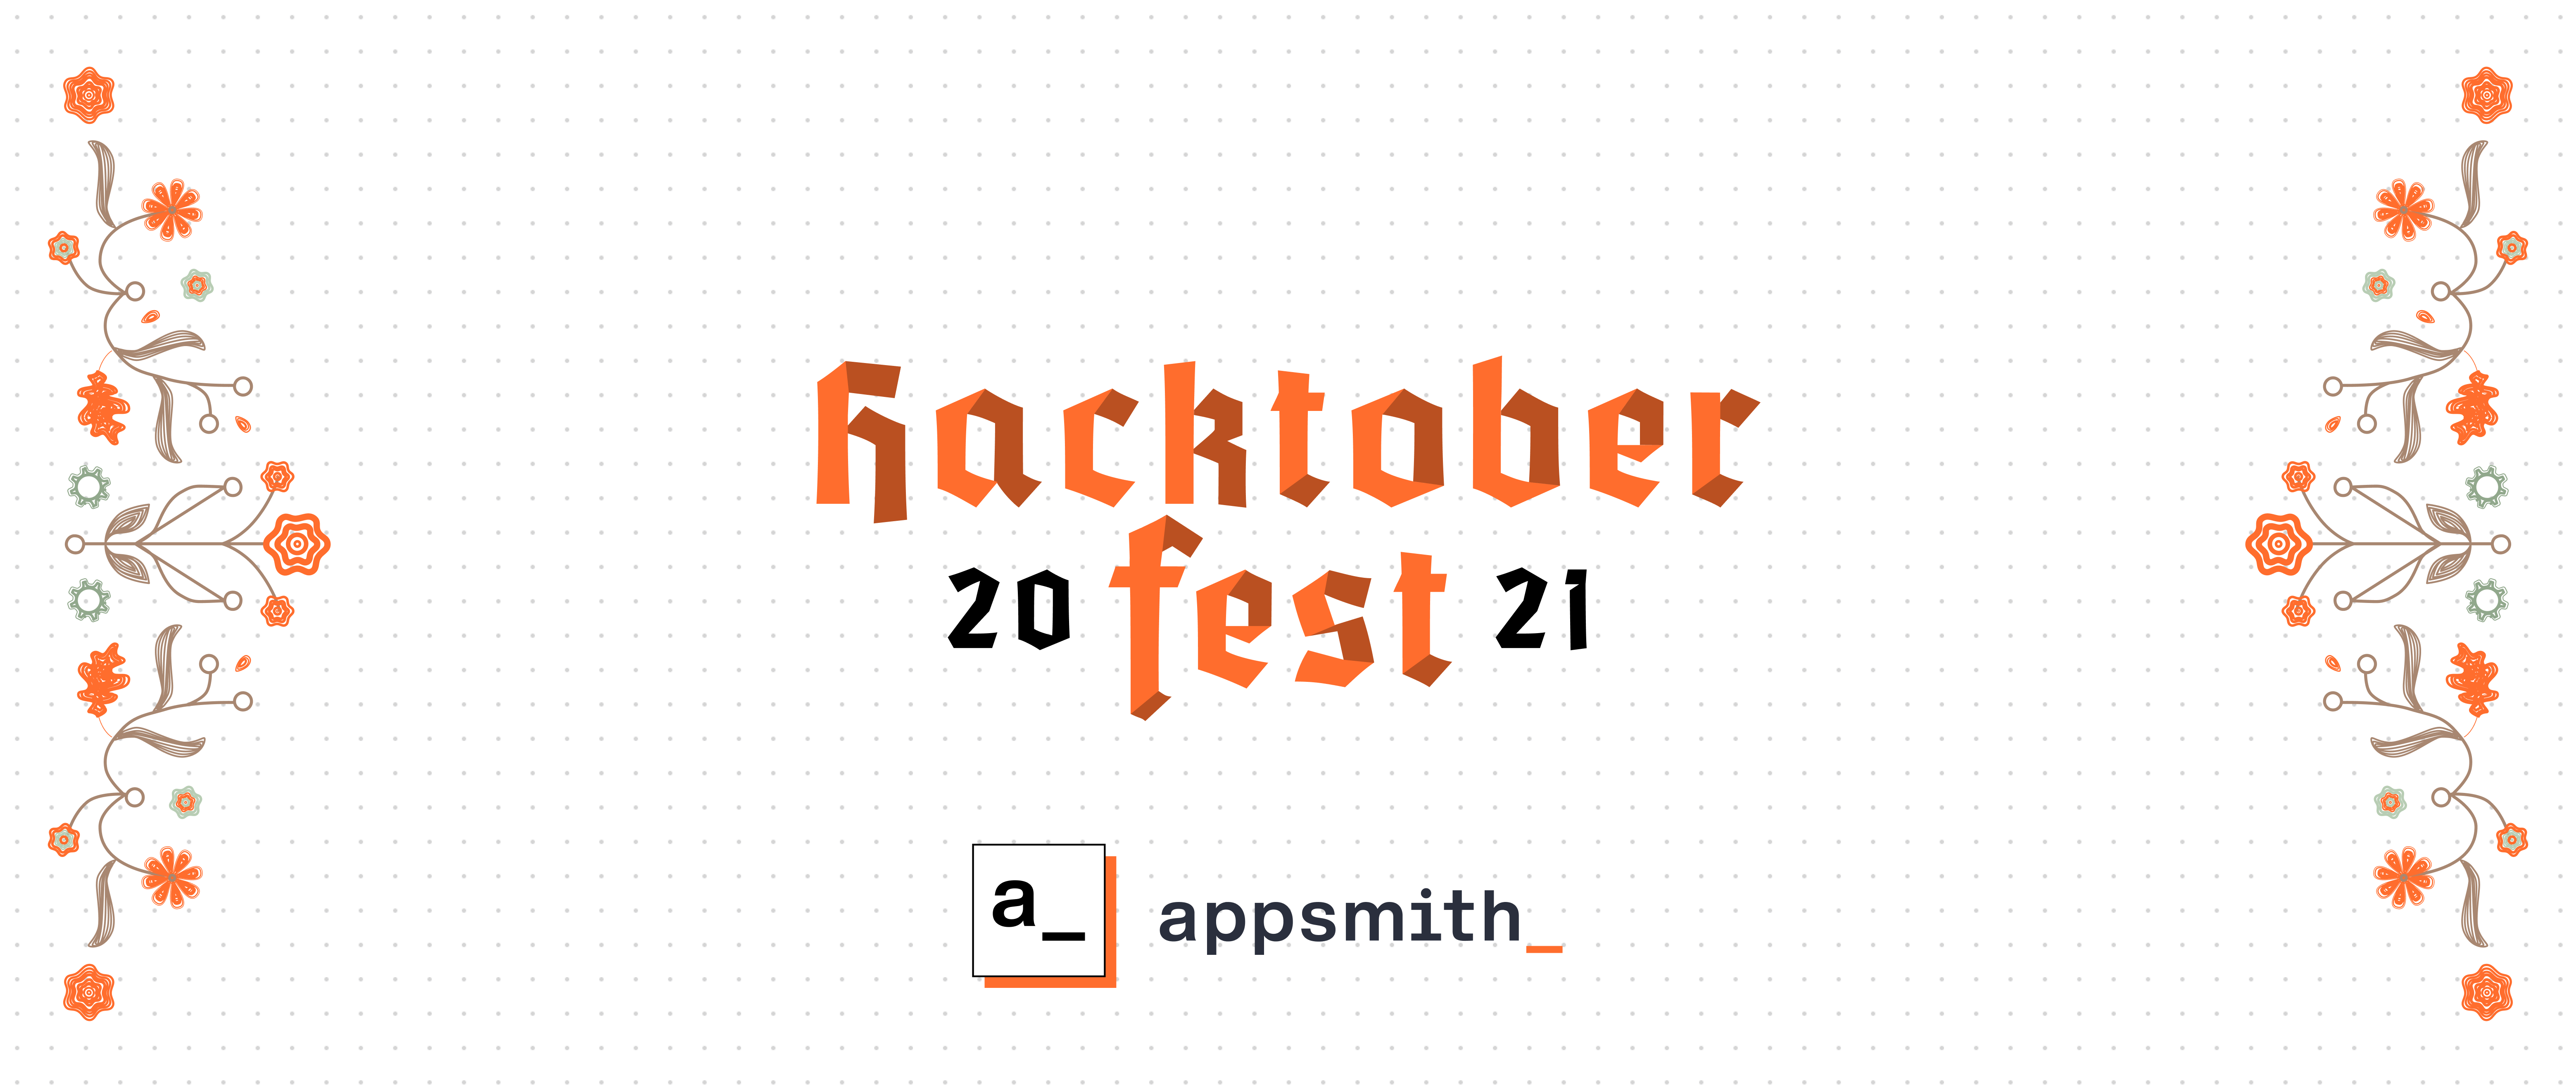 All You Need to Know About the Appsmith Hacktoberfest 2021